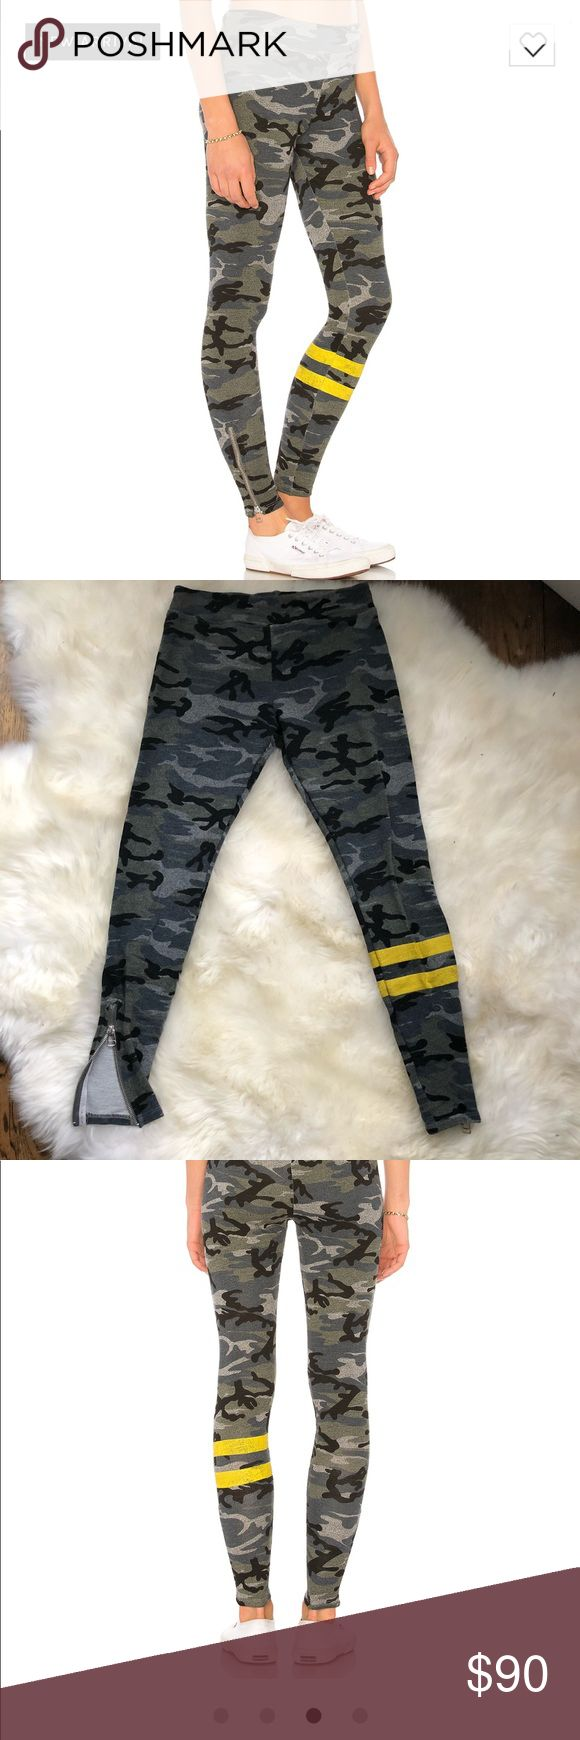 Sundry camo yoga pants Still in stores now! I've only worn and washed these once. They are soo cute I just have a million yoga pants already Sundry Pants Leggings